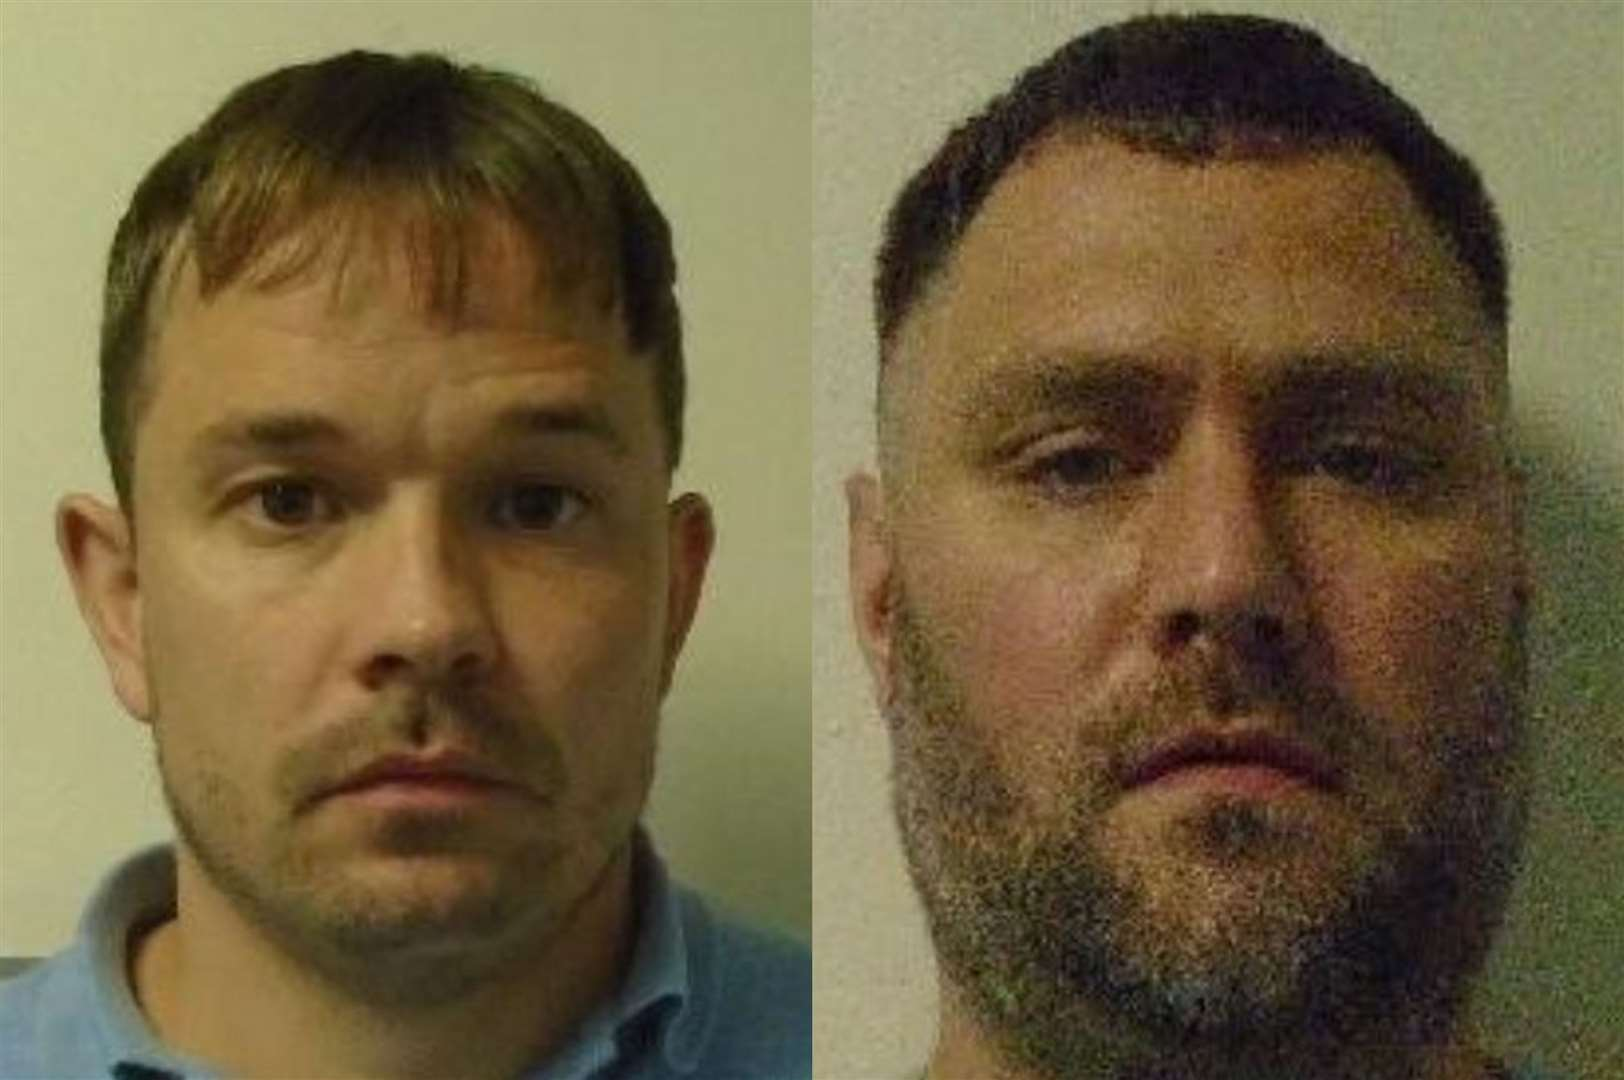 Phillip Pardoe (left) and Peter Durman have escaped from prison